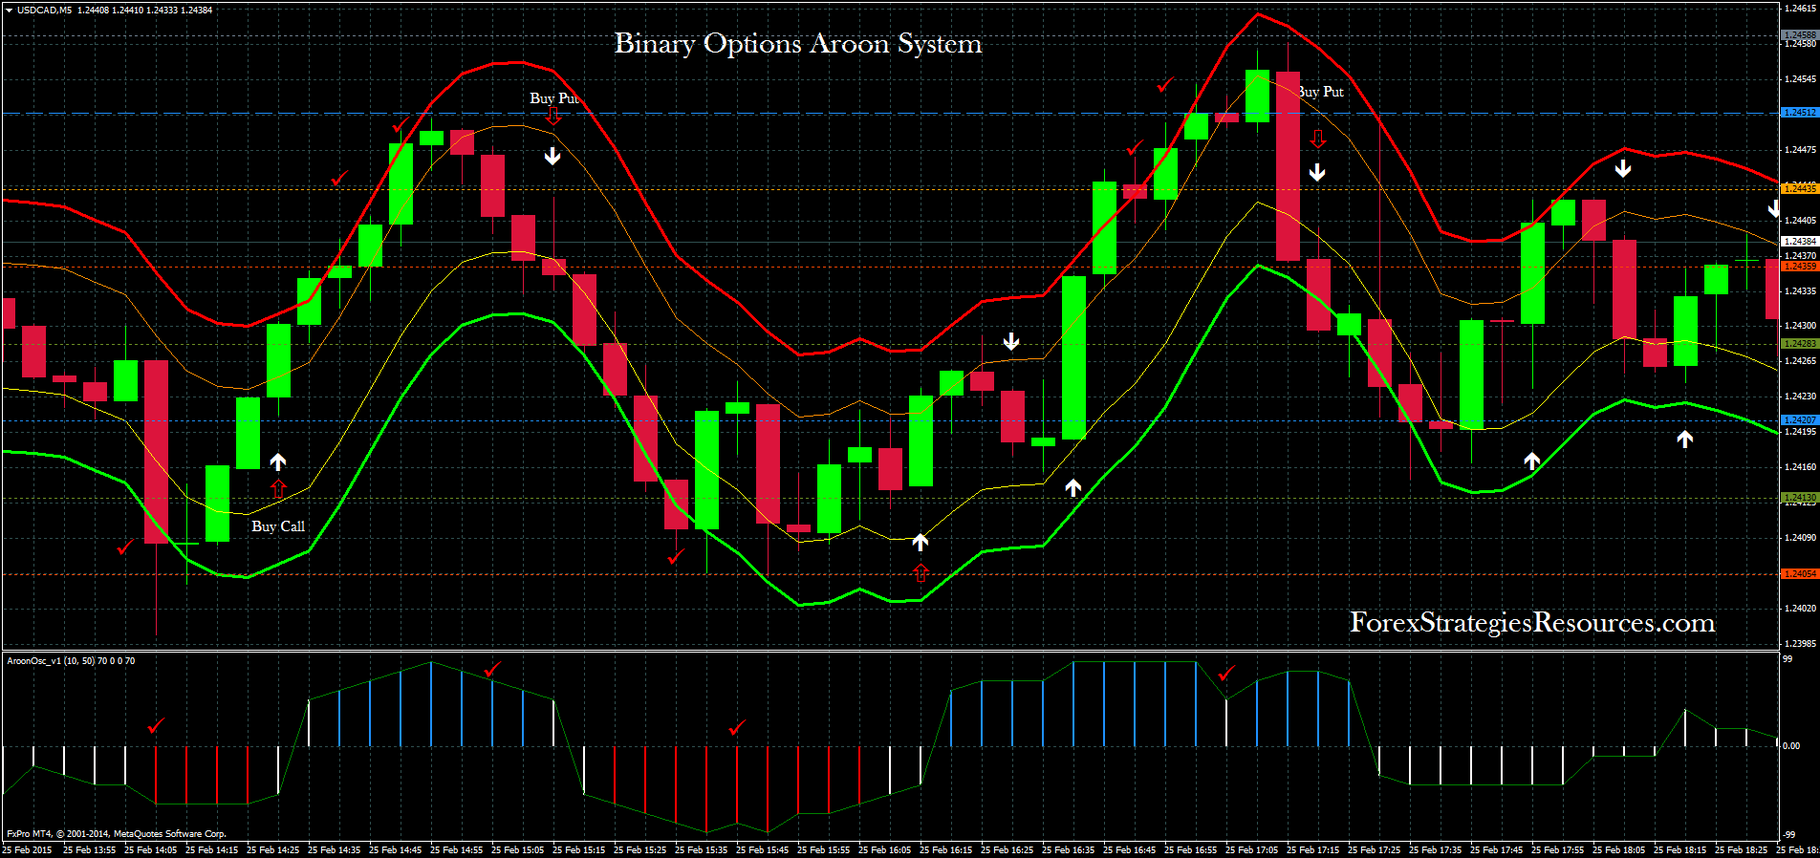 Binary options trading strategy that works